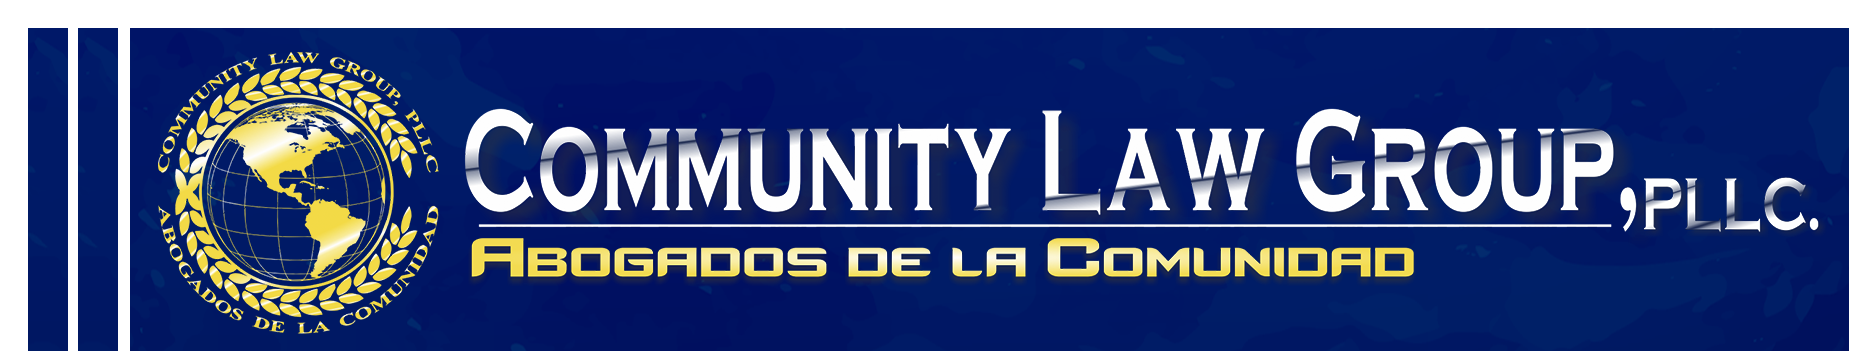 Community Law Group, PLLC. Abogados de la comunidad